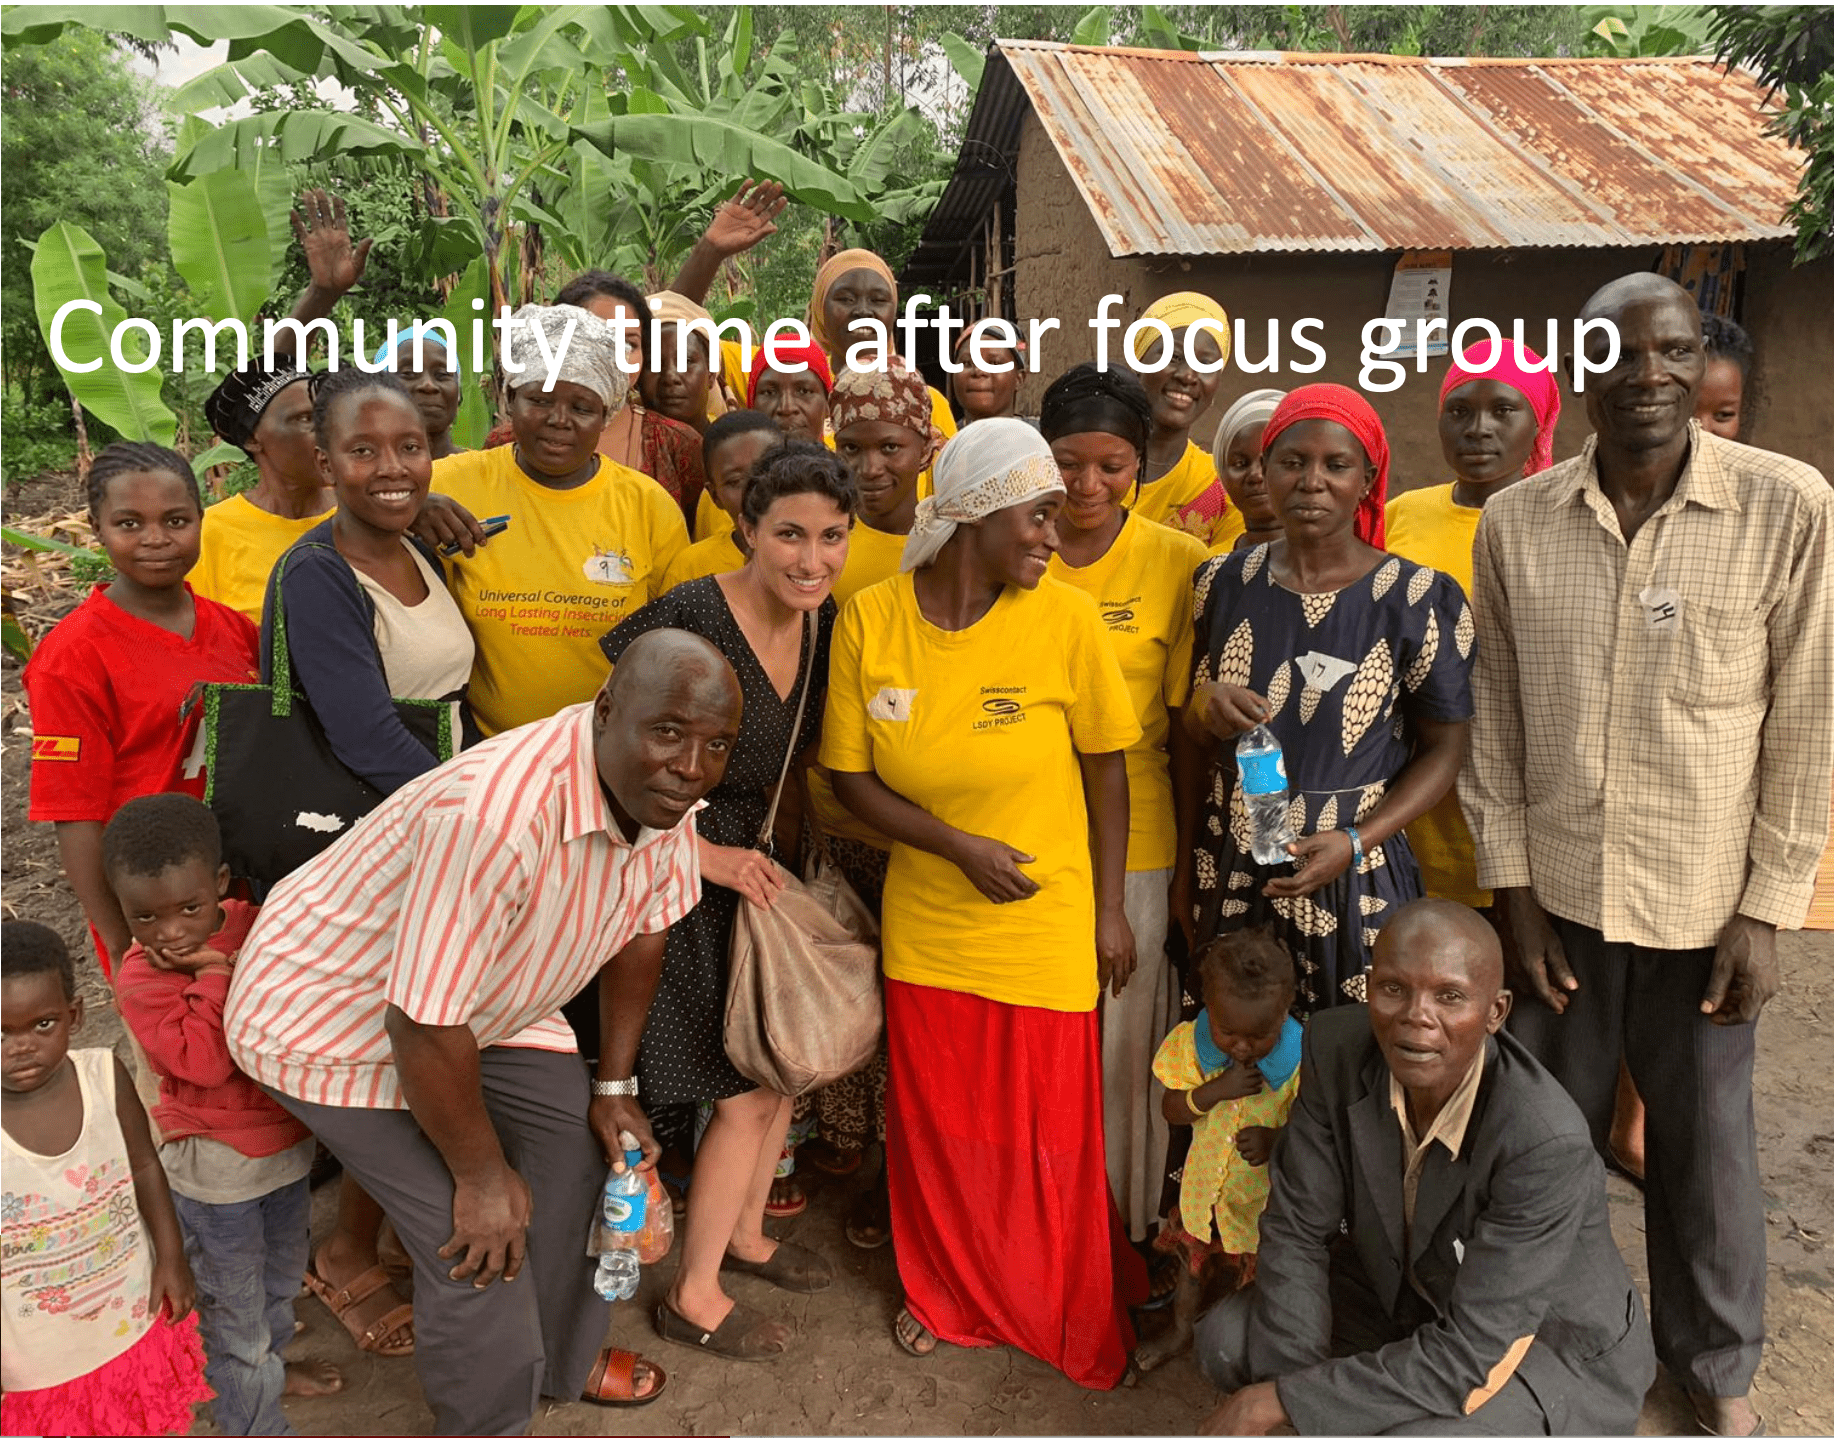 Epidemiologist in Uganda with the community after a focus group